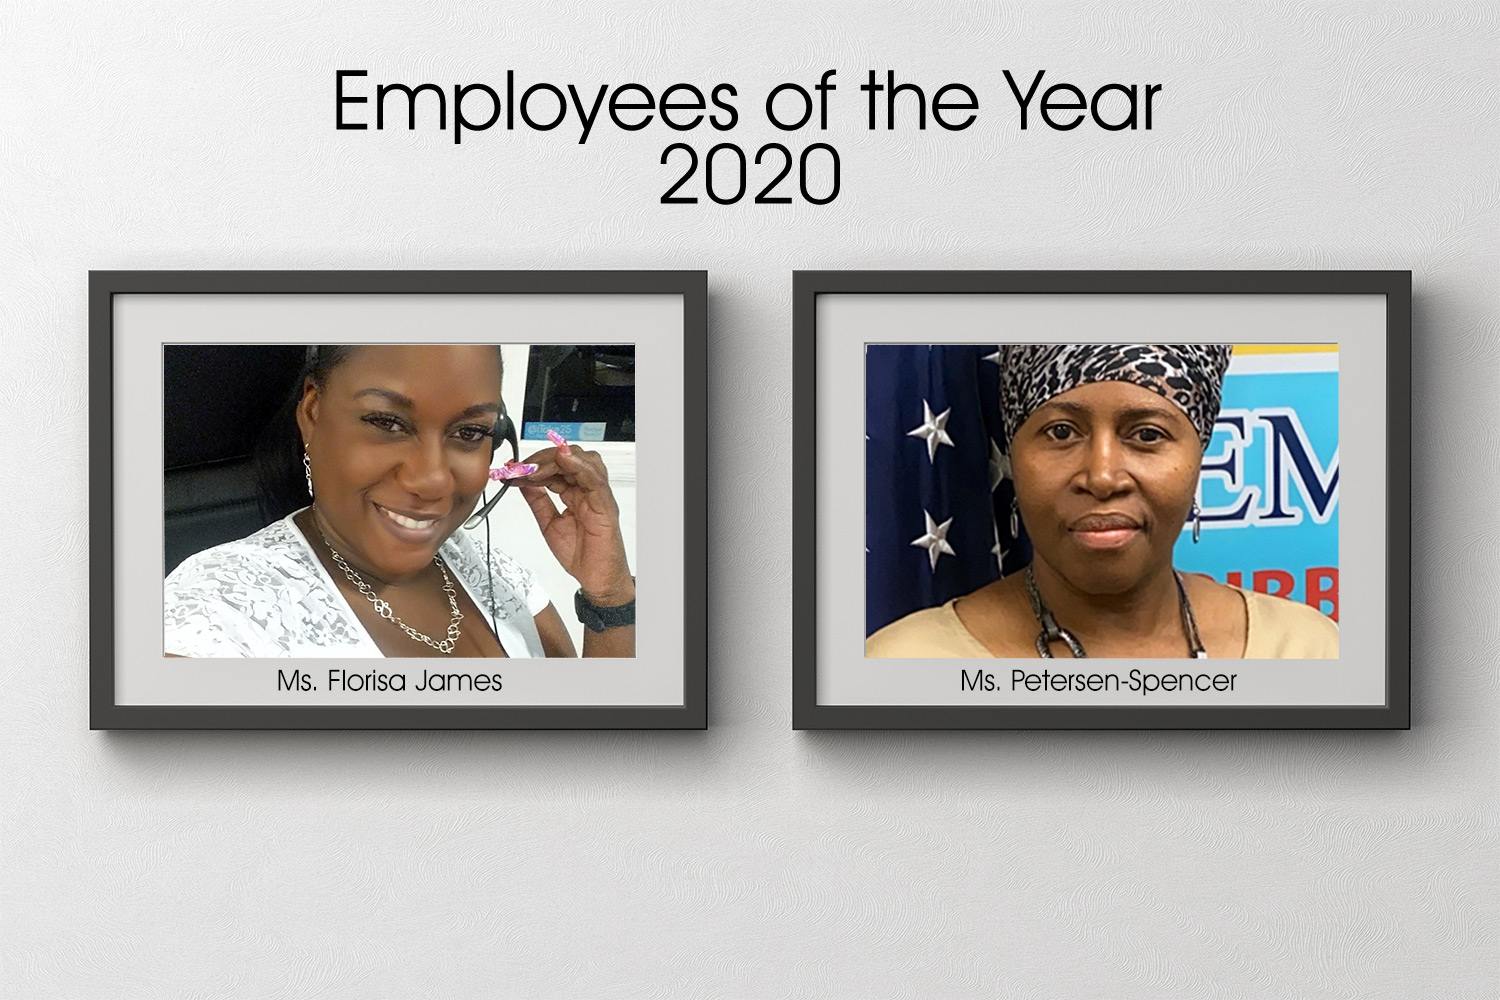 employees-of-the-year-2020